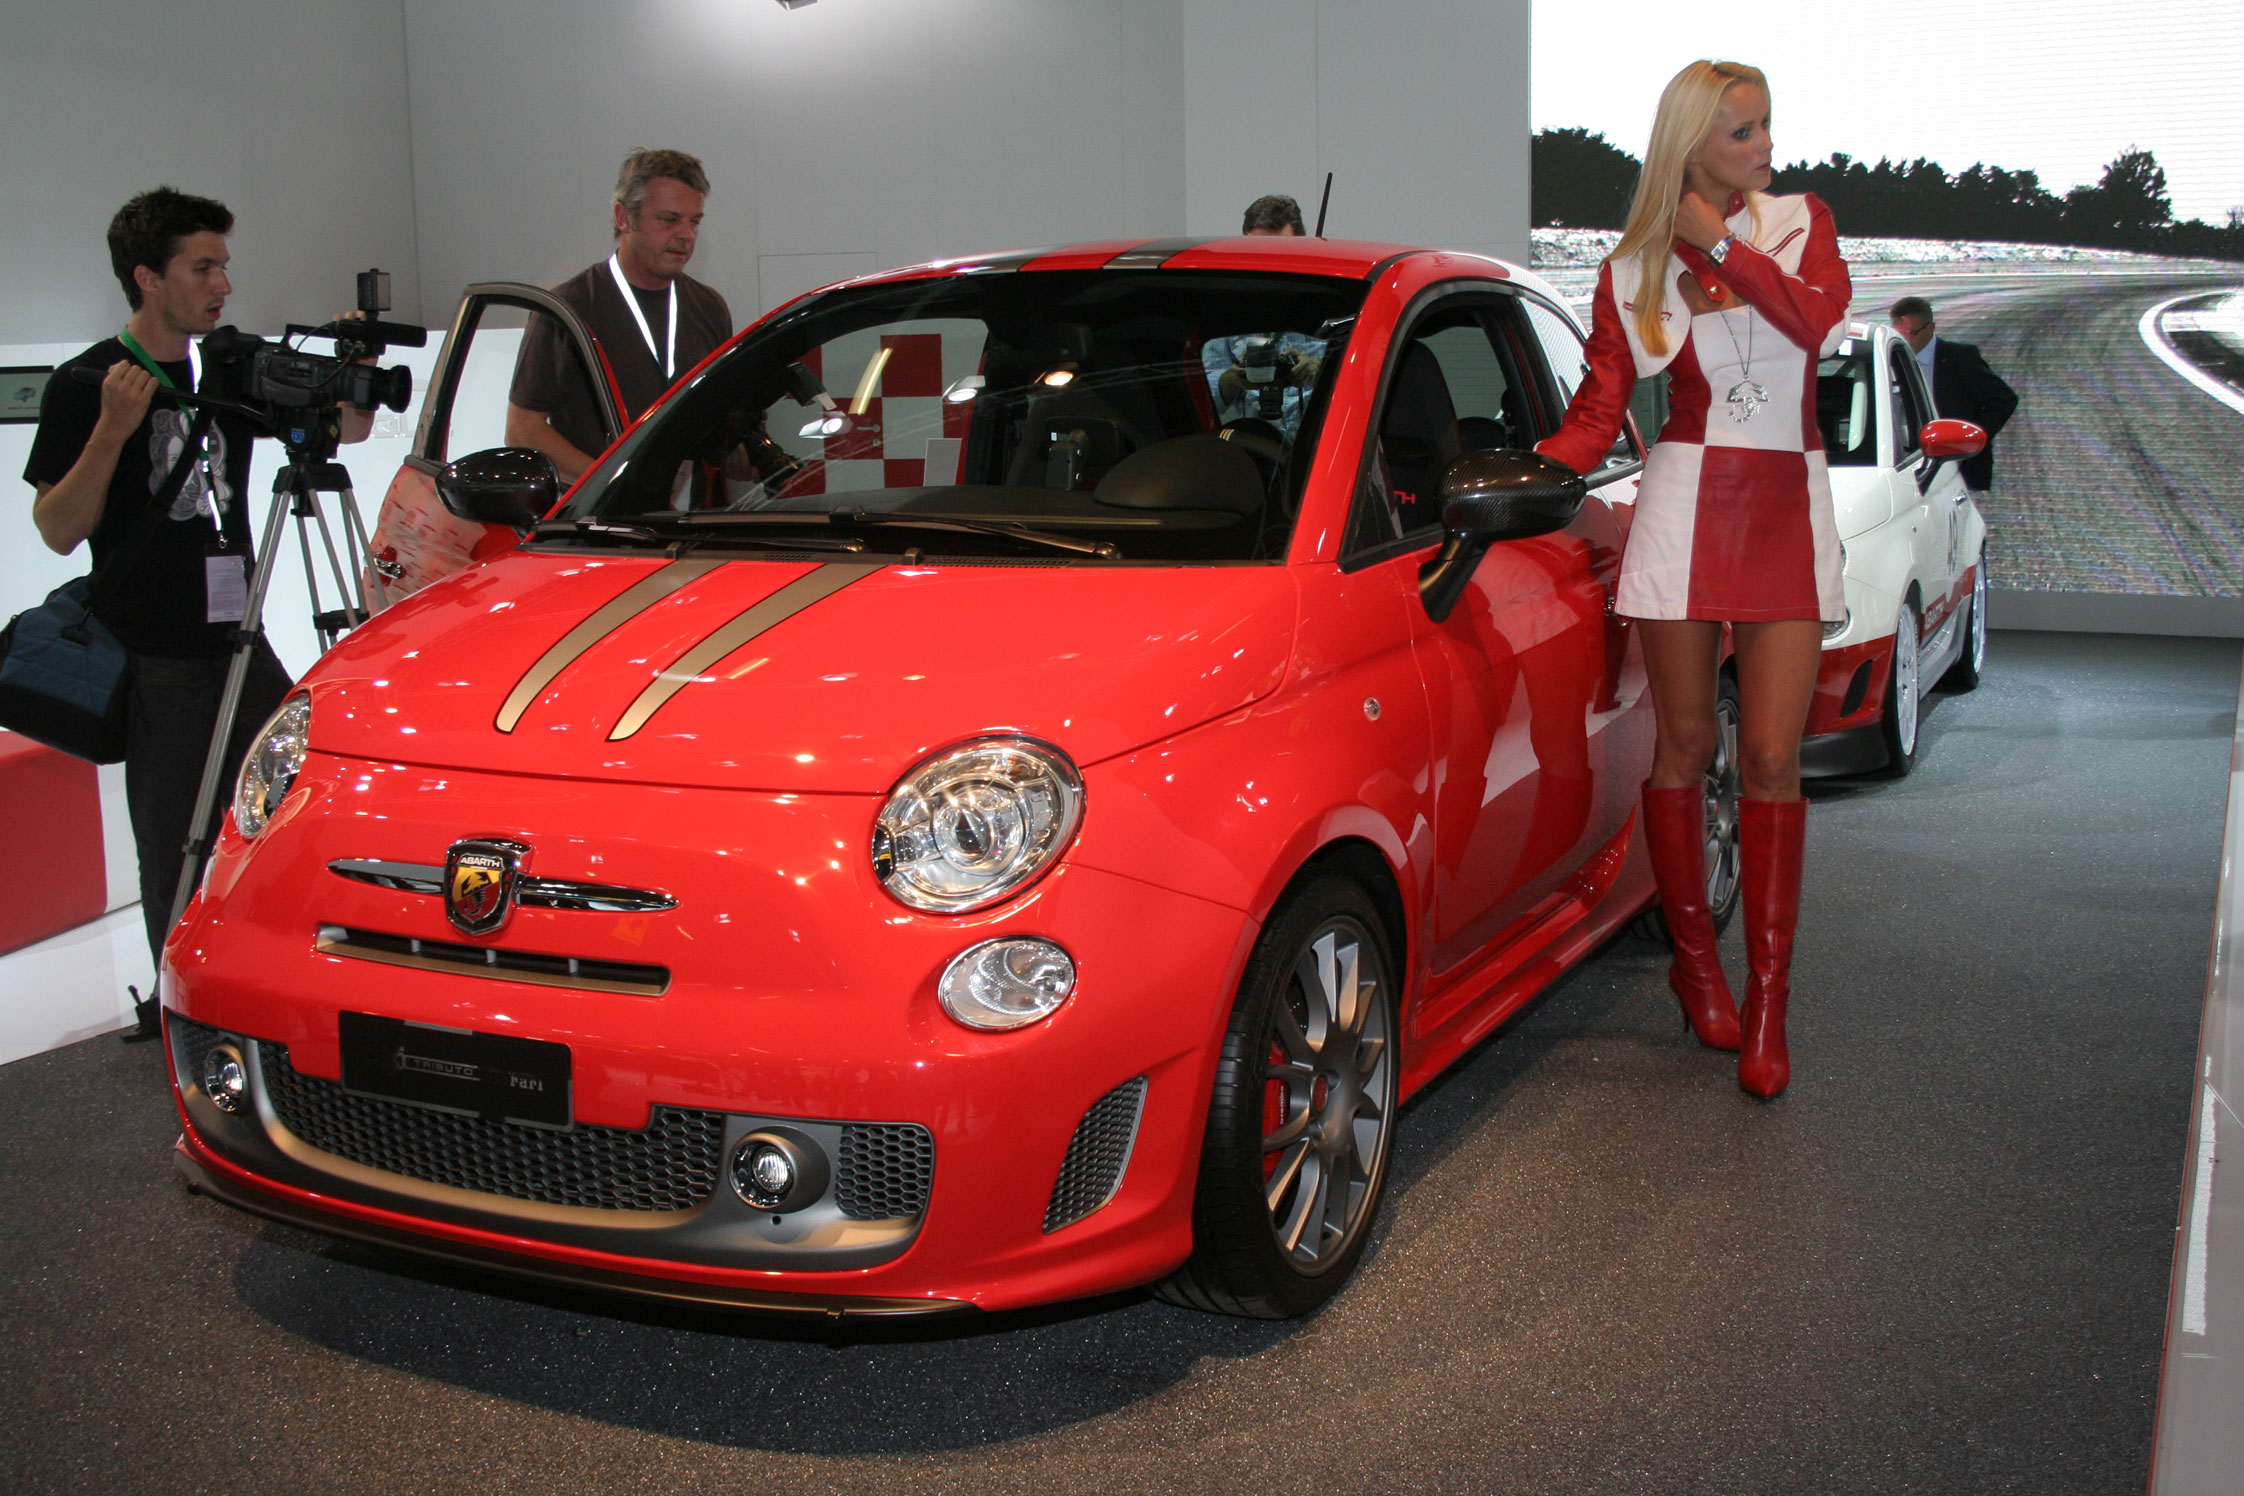 fiat 500 abarth tributo ferrari photos 9 on better parts ltd. Black Bedroom Furniture Sets. Home Design Ideas